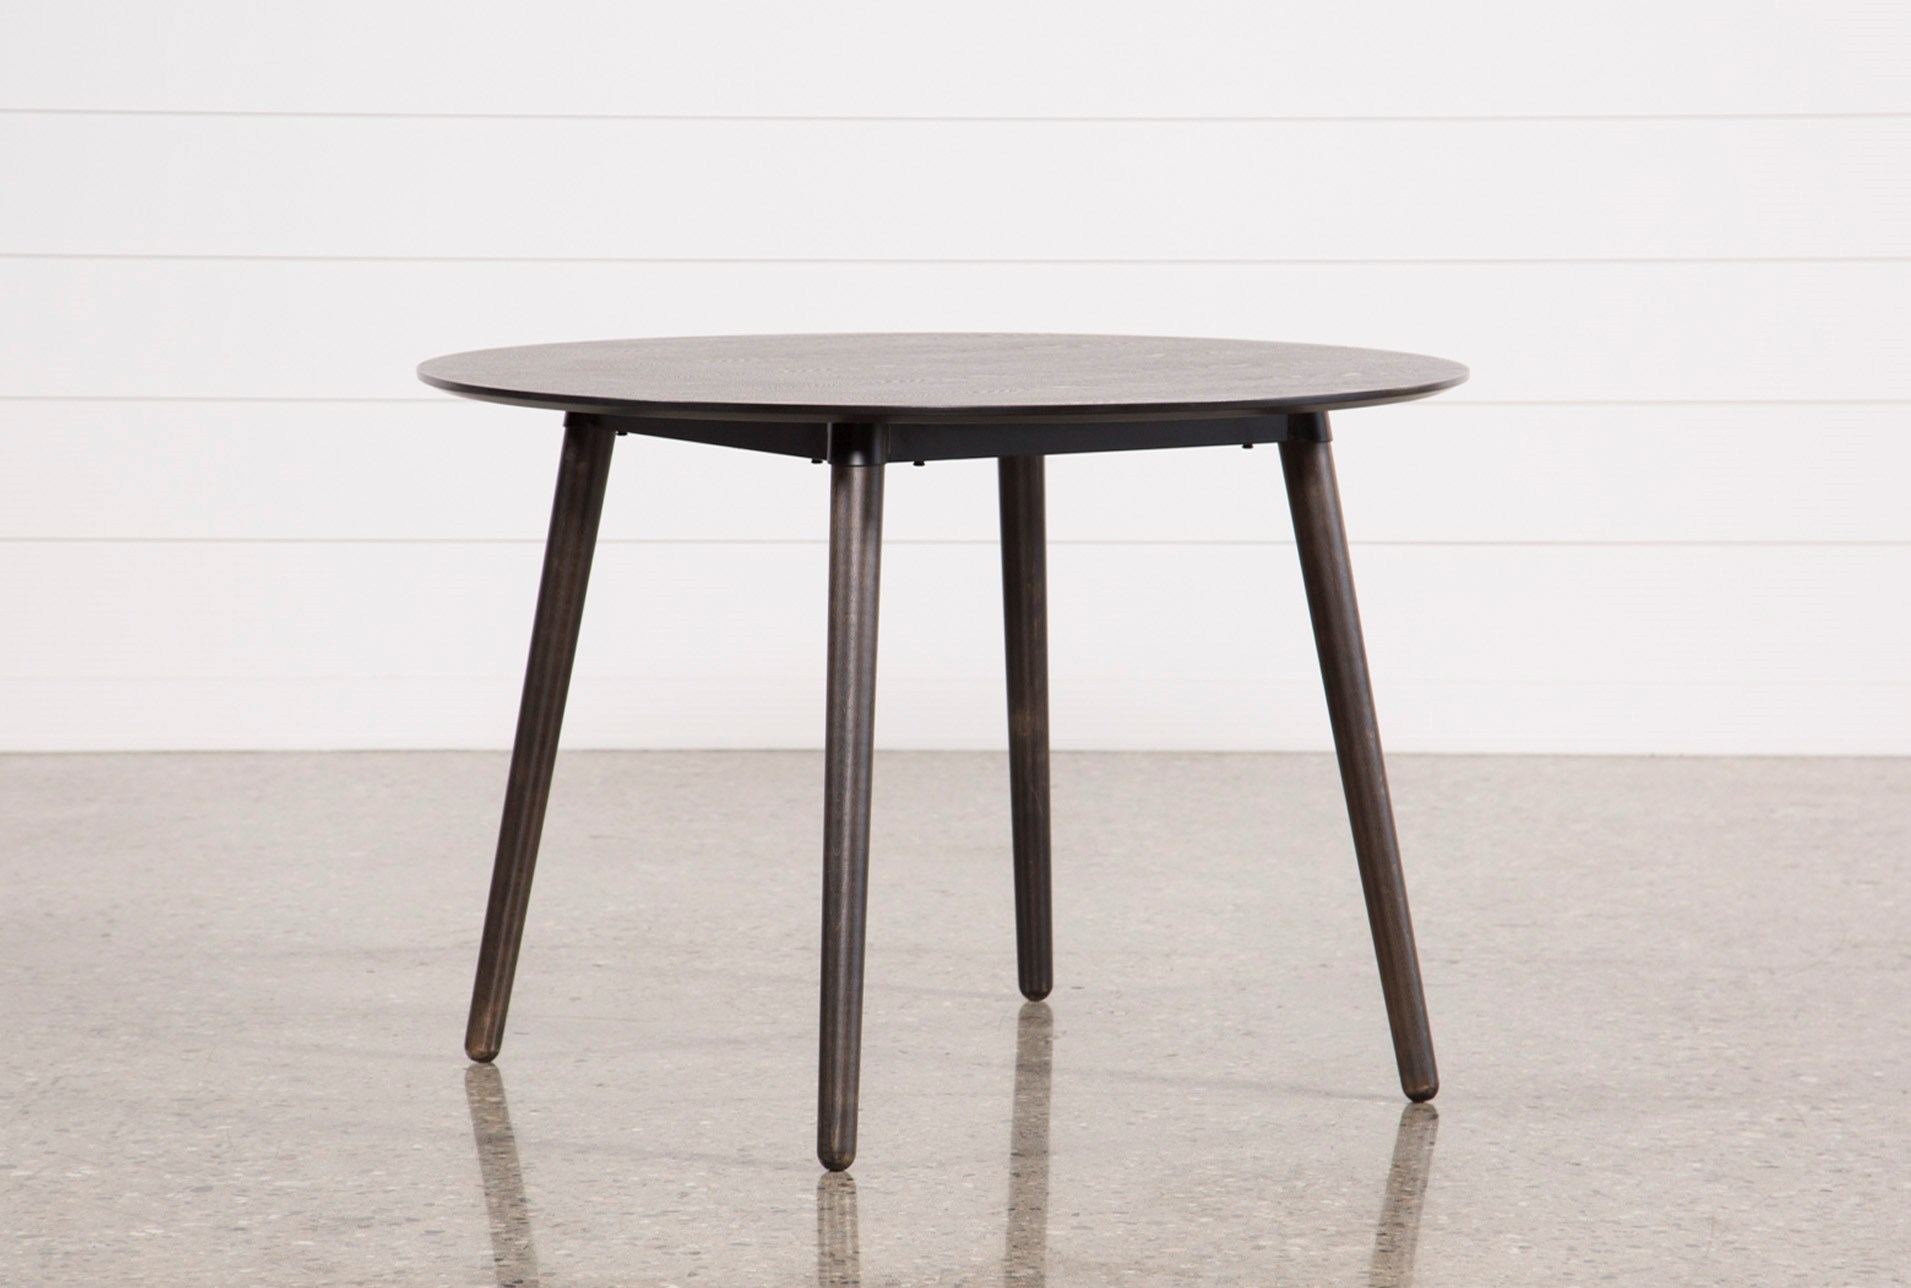 Dining Tables to Fit Your Home Decor